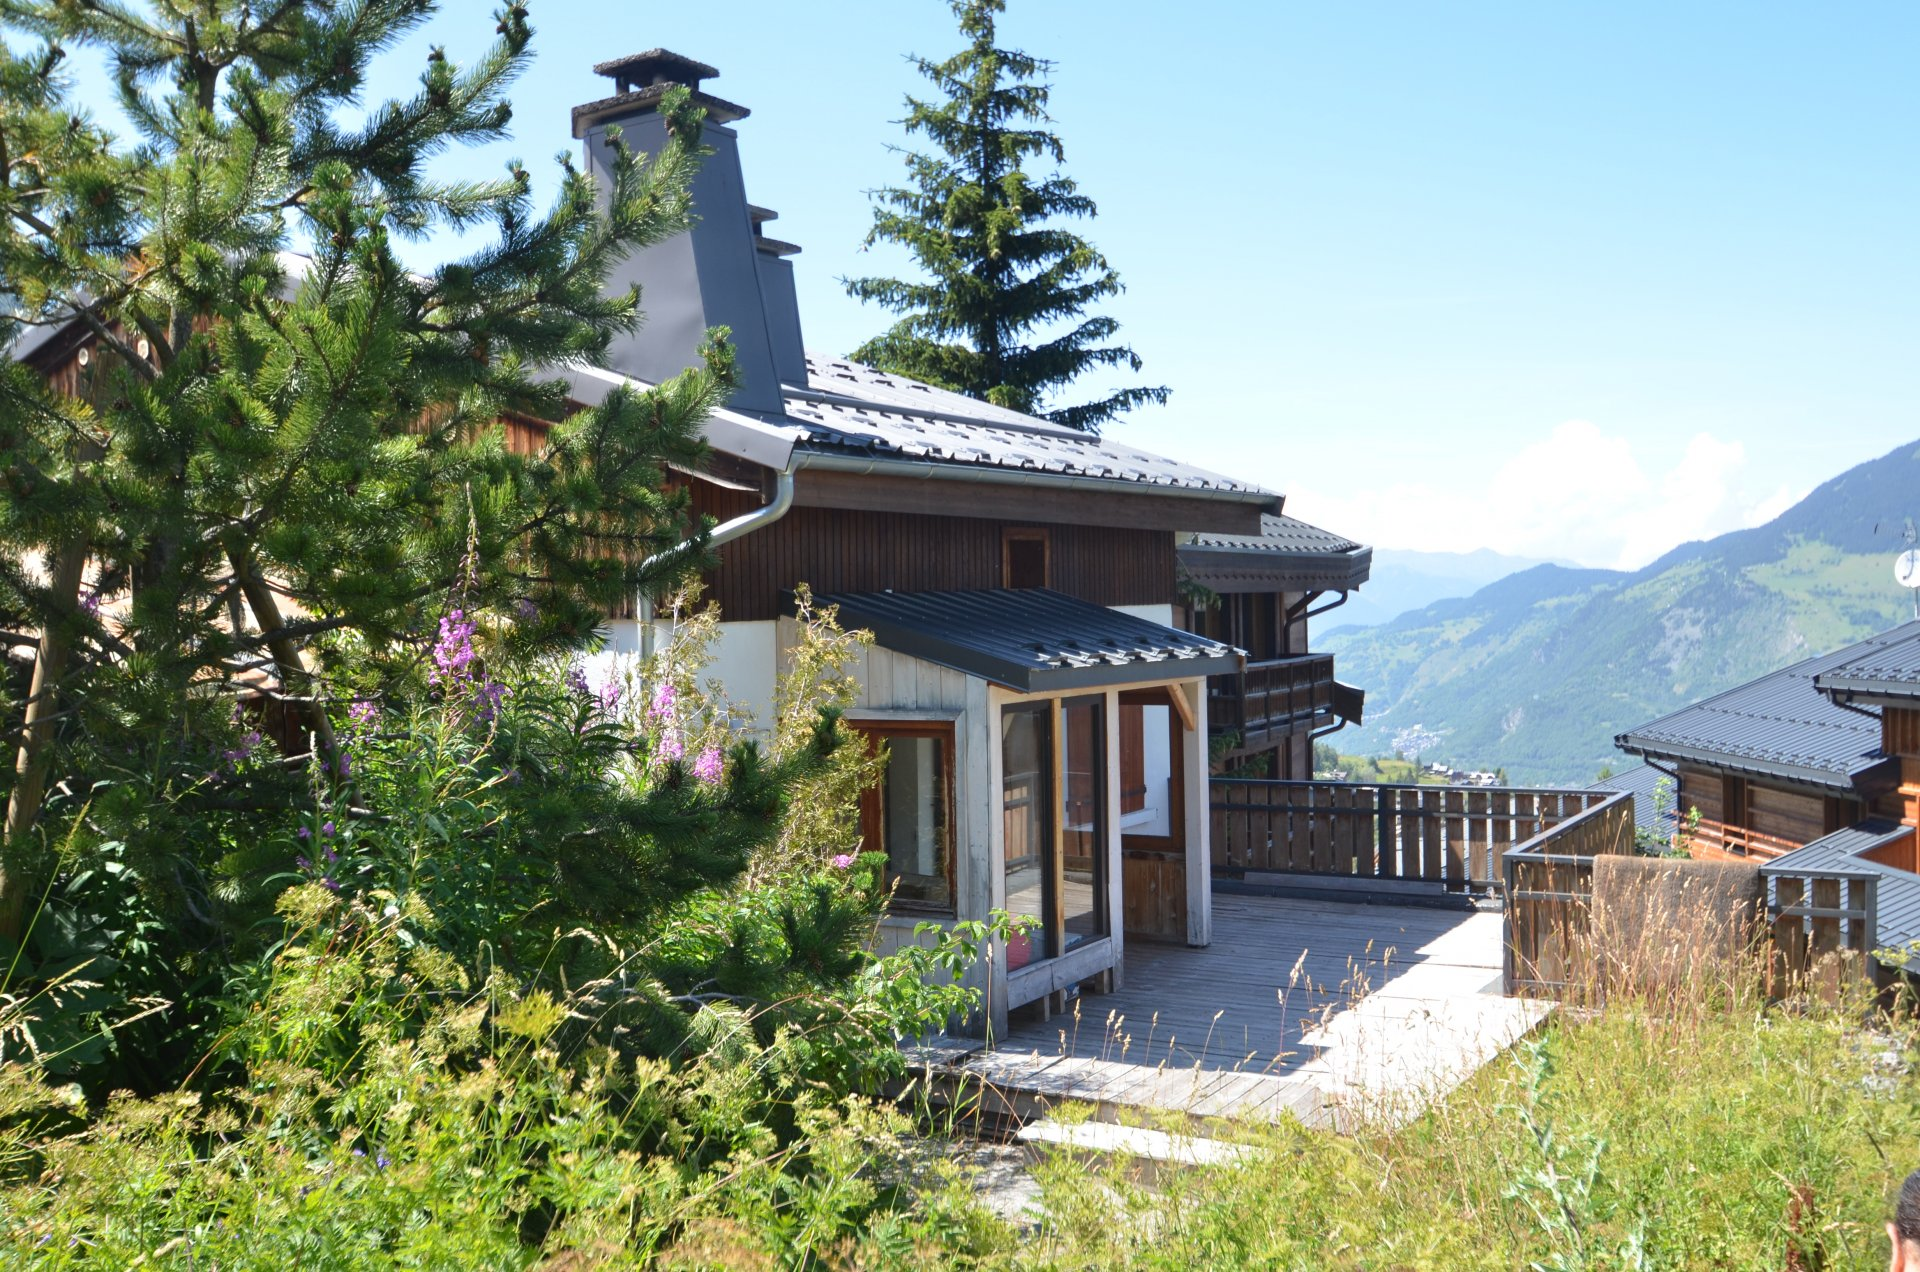 Huur Stadswoning - Courchevel Moriond 1650